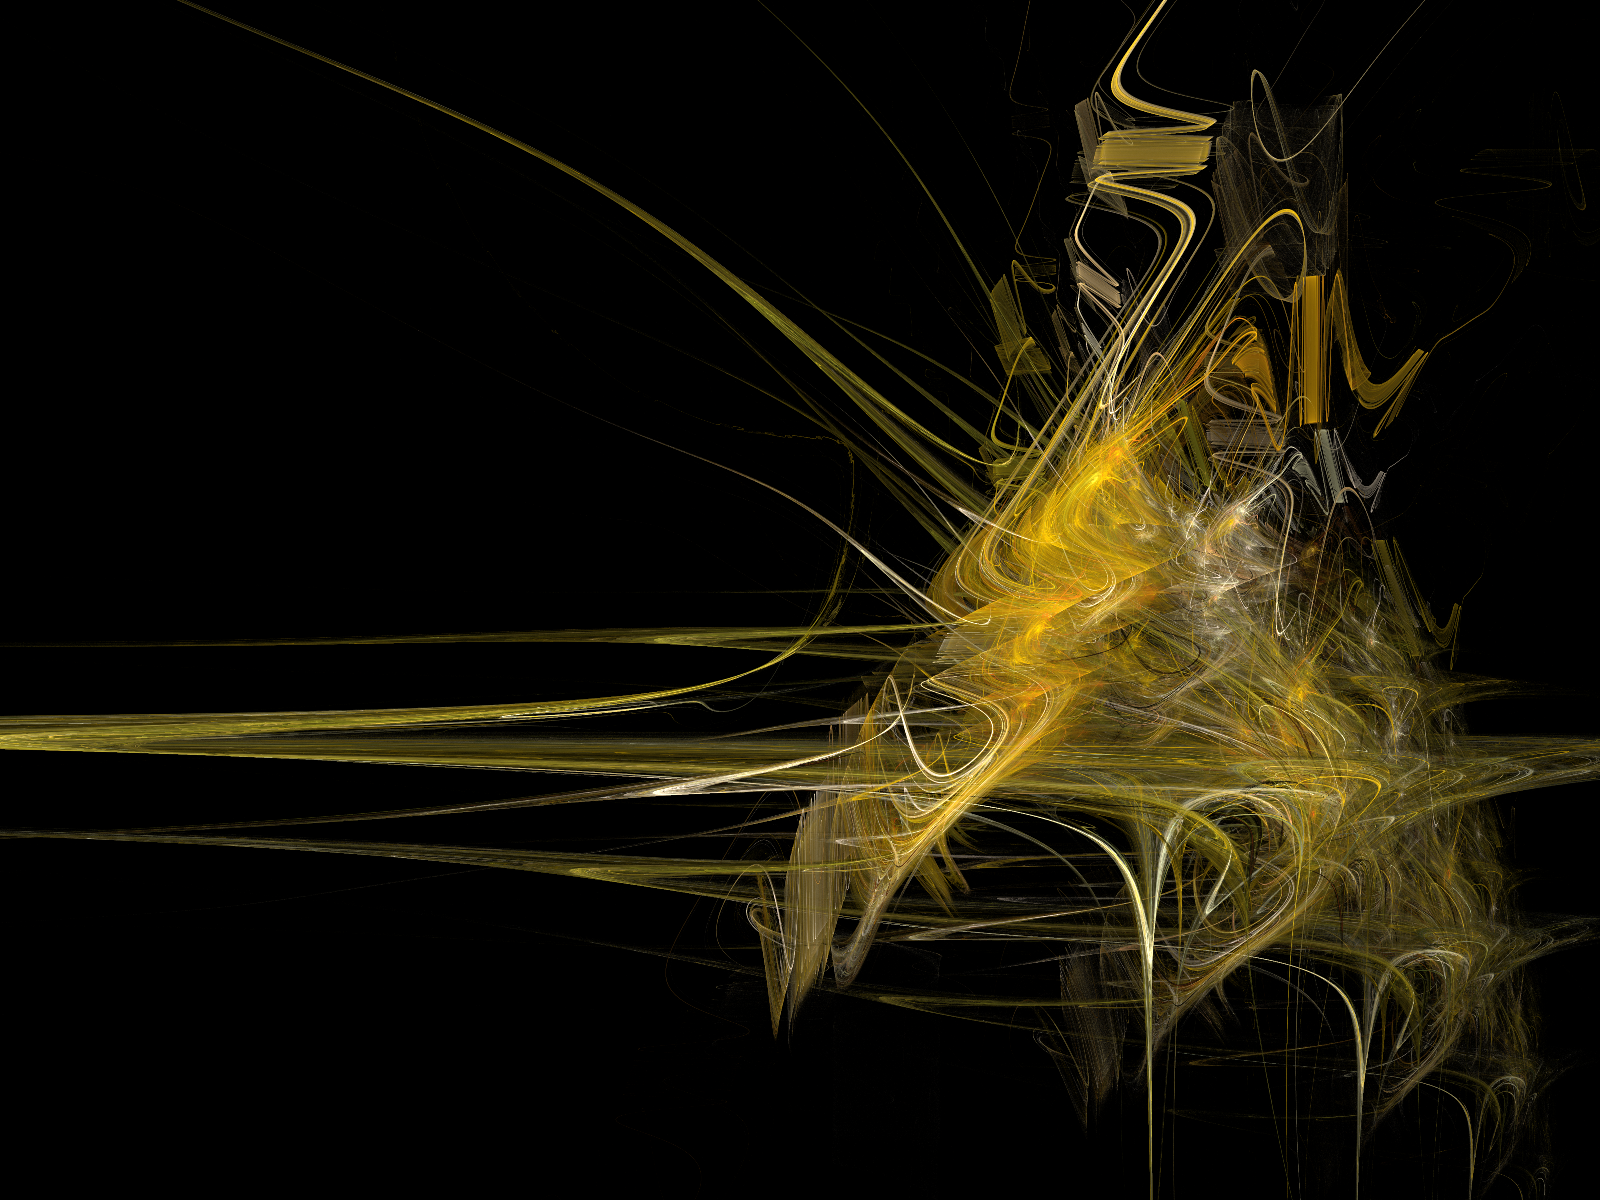 Black And Yellow Wallpaper 15 Desktop Background